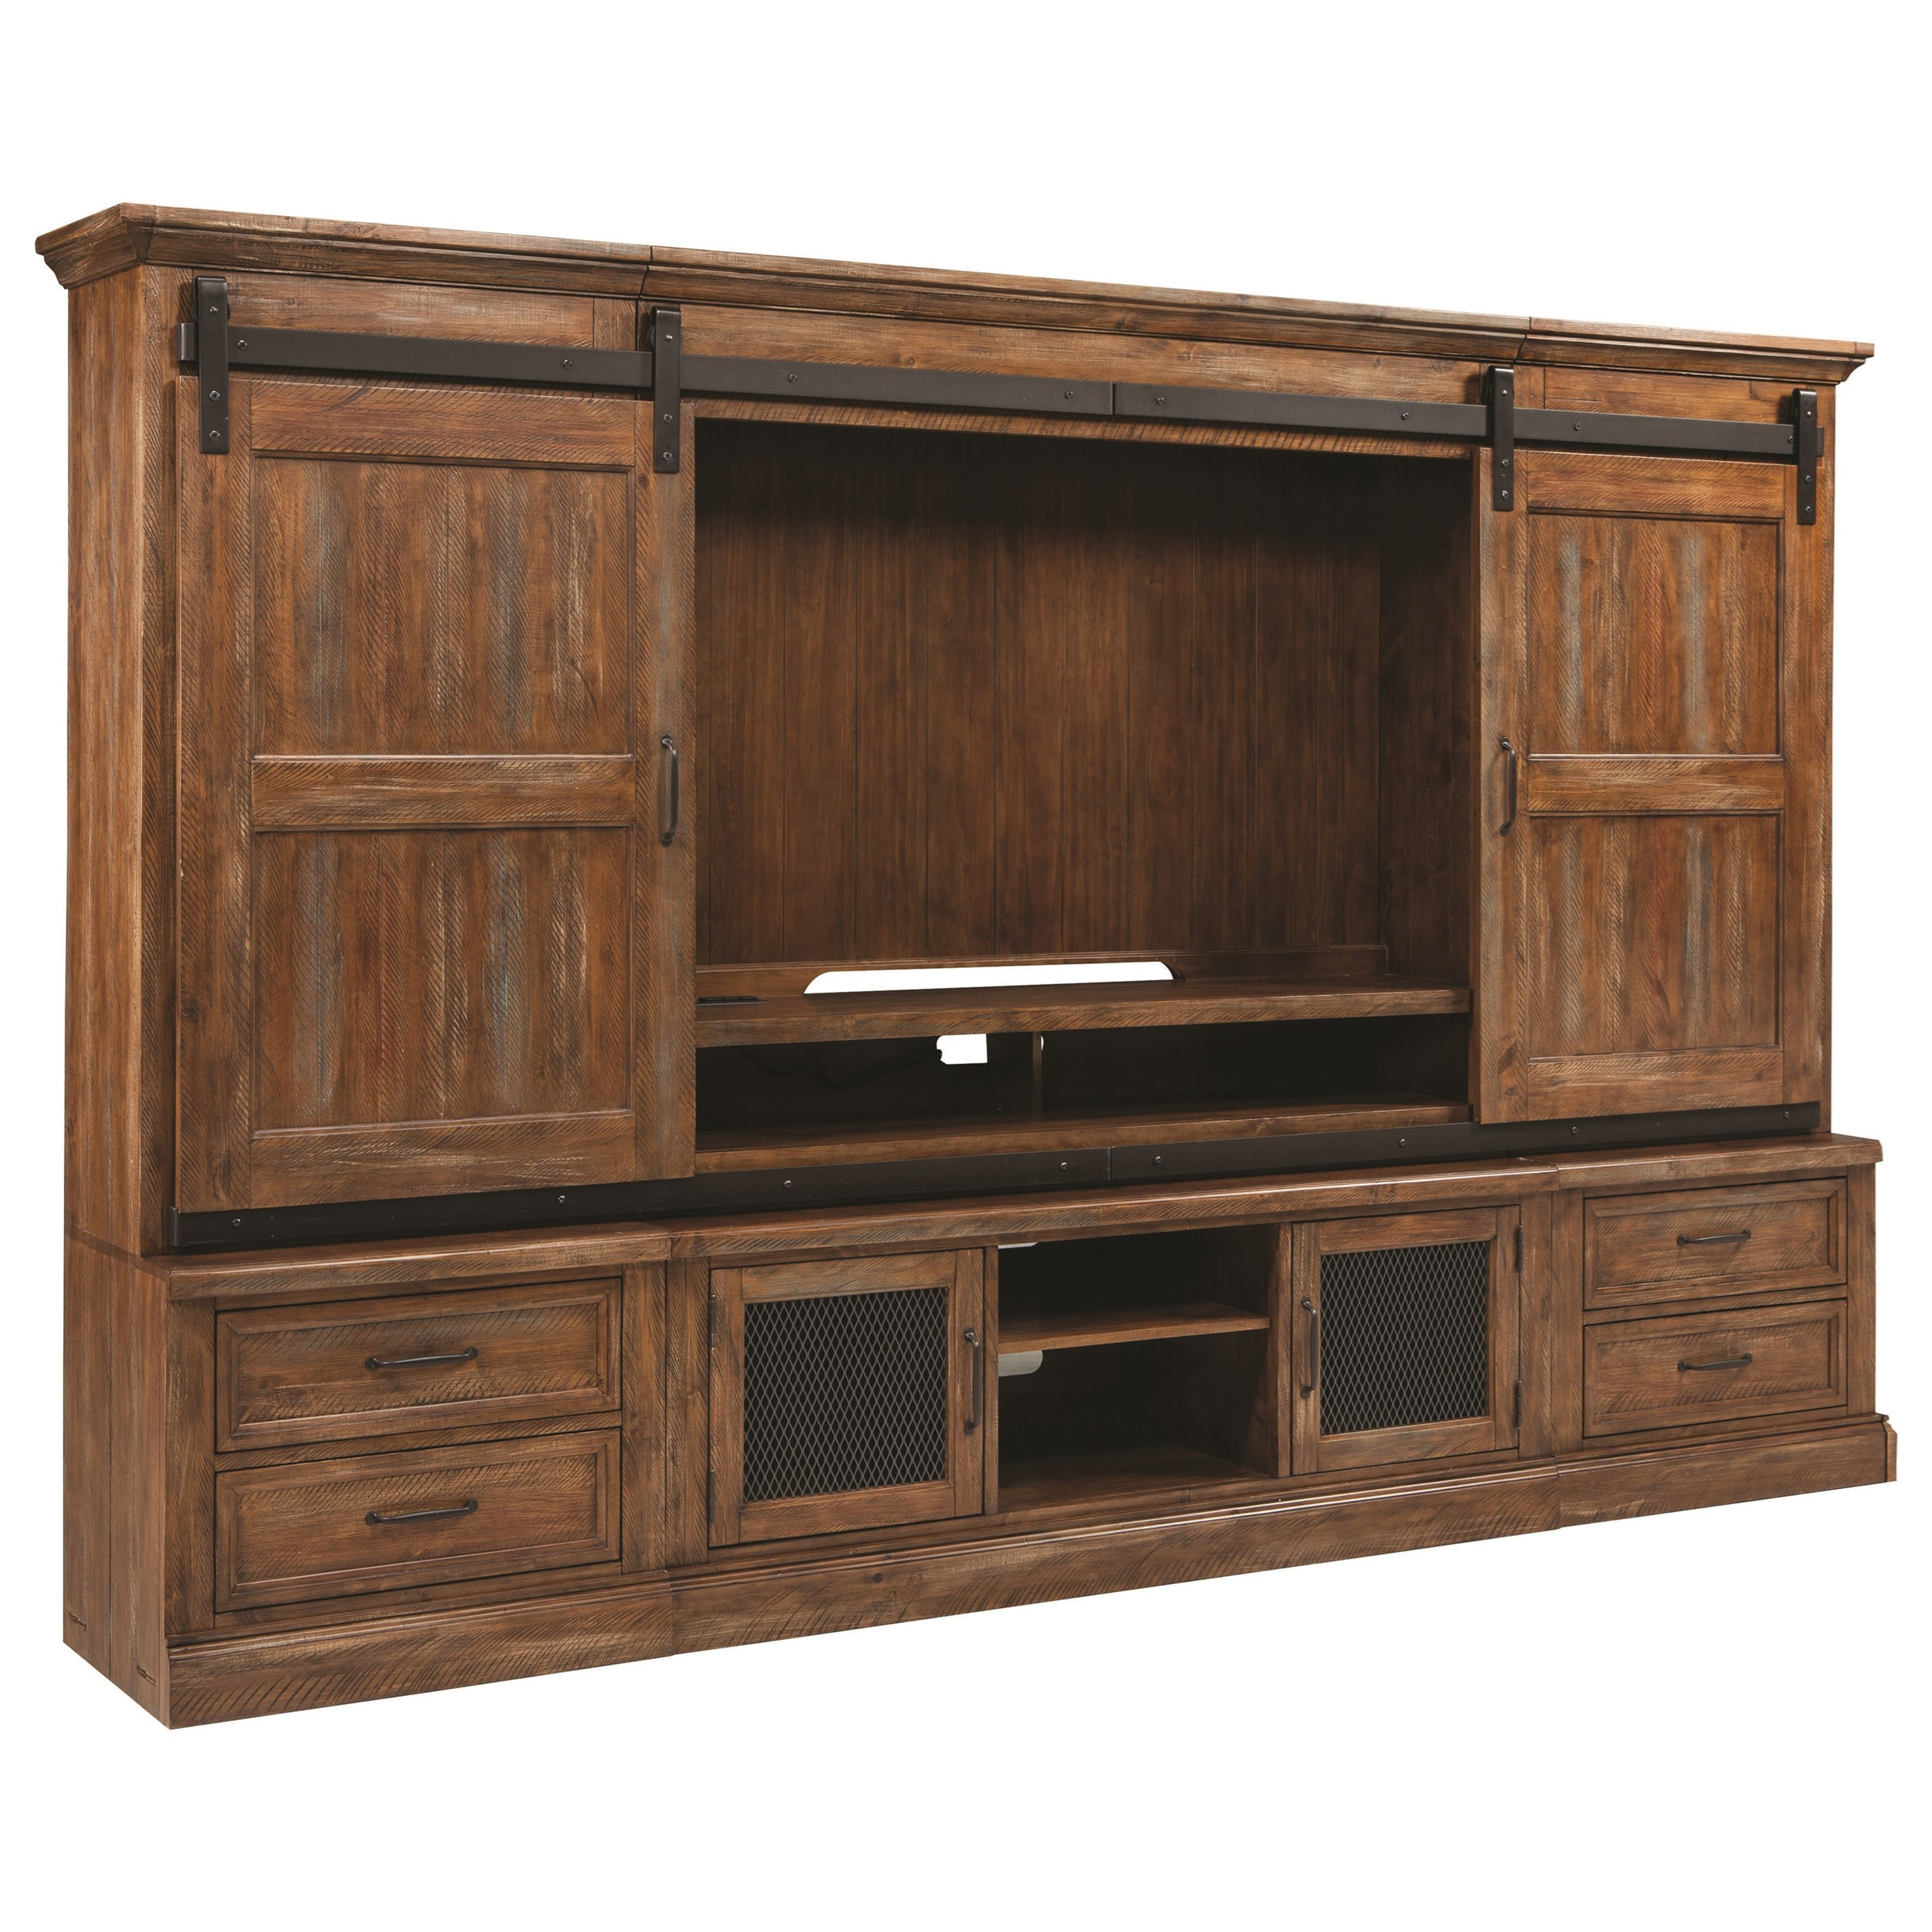 Intercon Taos Rustic Entertainment Center Wall Unit With Sliding